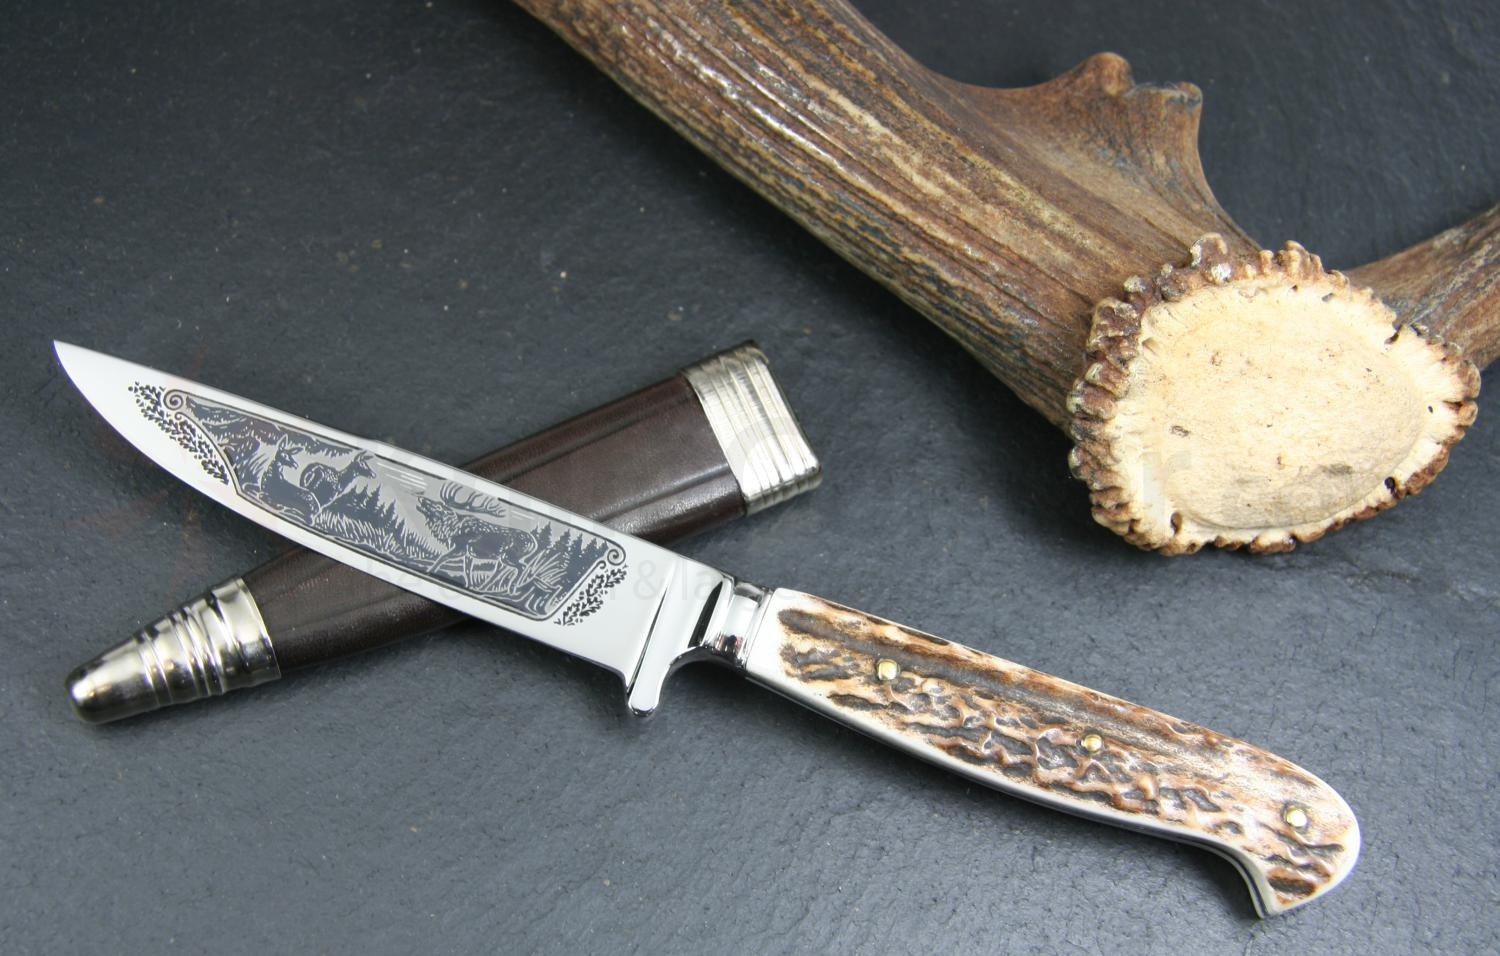 Hubertus Decorated Stag Scene Nicker Fixed 3.75 inch Stainless Blade, Stag Handles, Leather Sheath